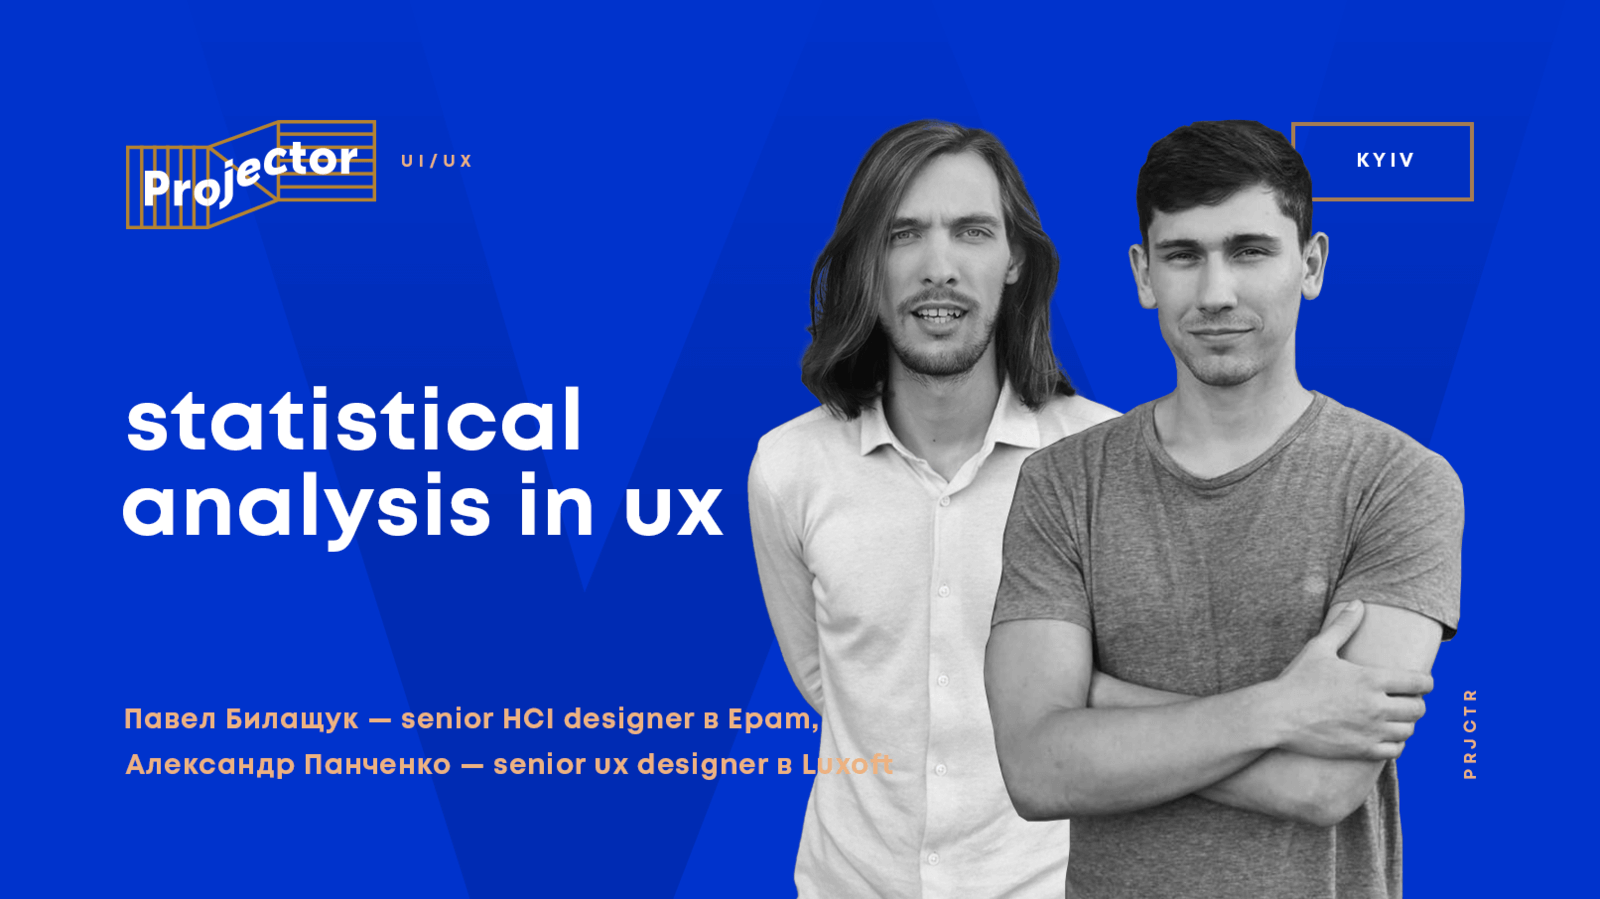 Statistical analysis in UX